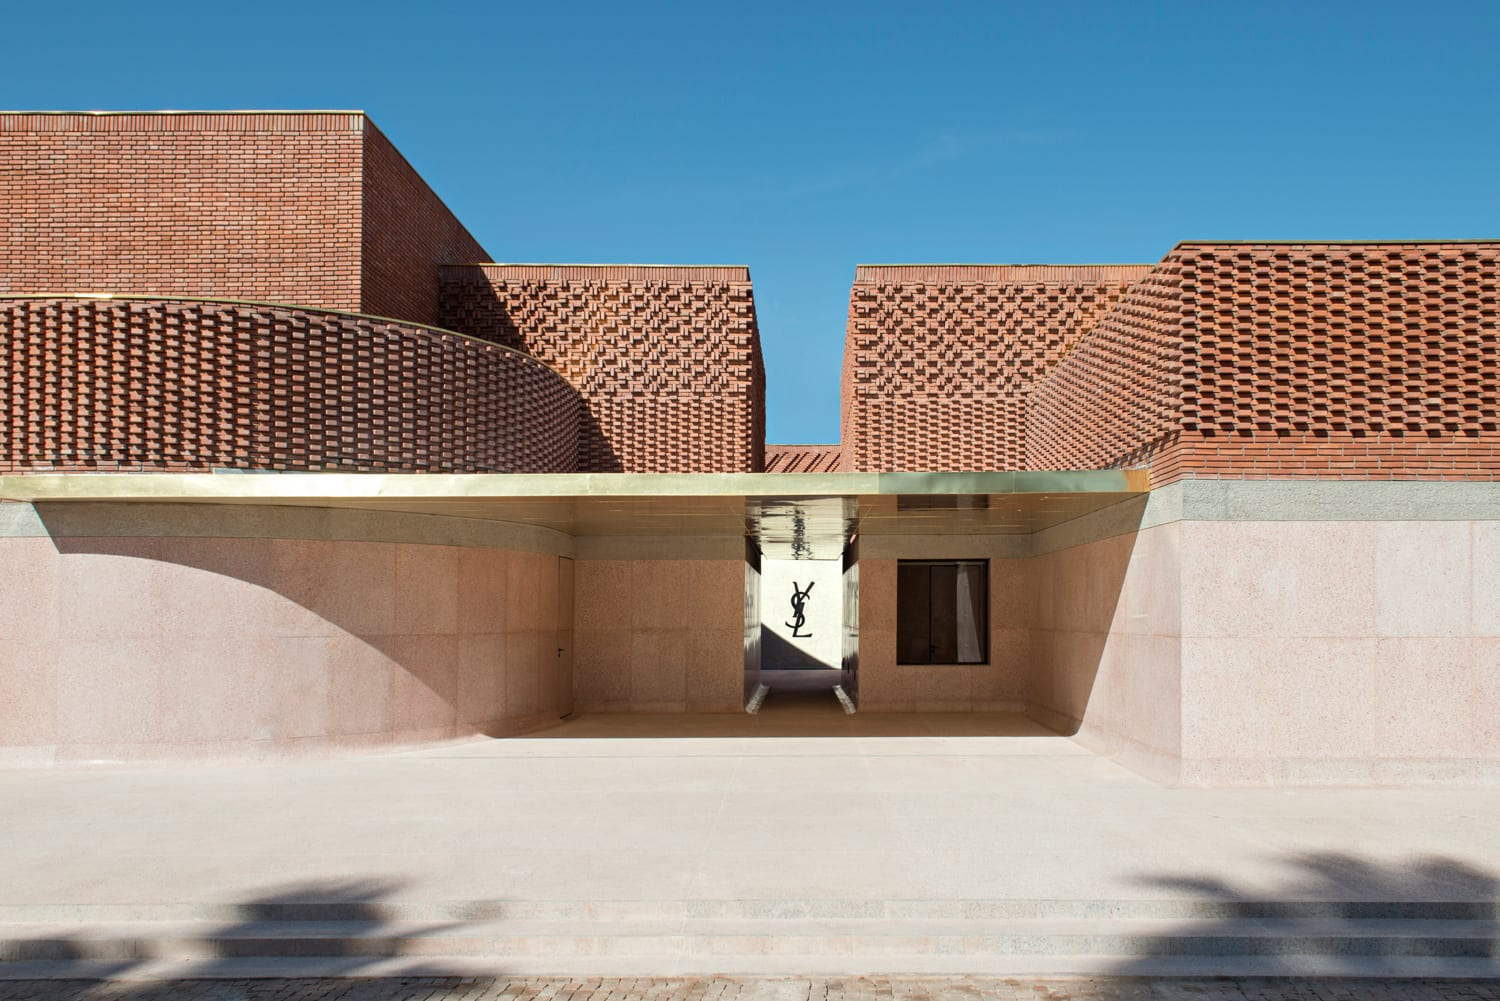 Yves Saint Laurent Museum in Marrakech by Studio KO | Yellowtrace